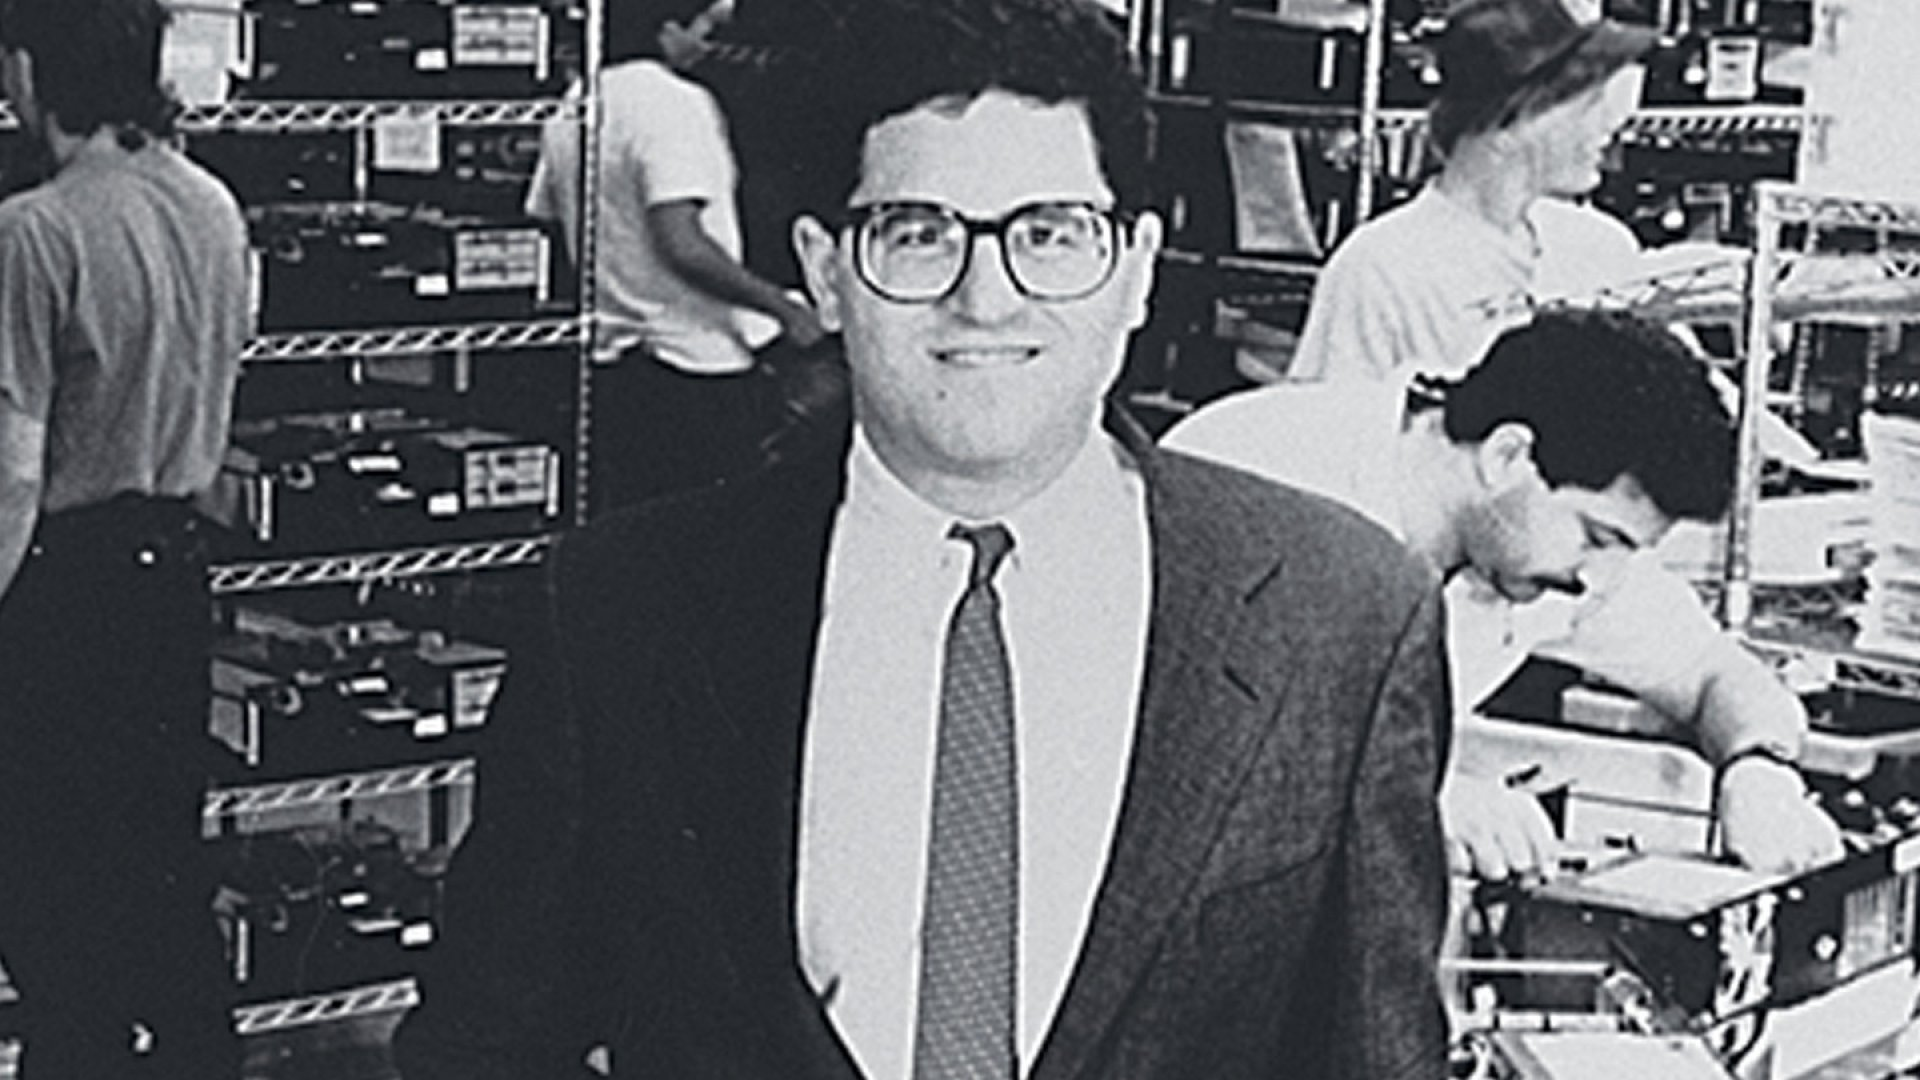 <strong>COLLEGE DROPOUT</strong> Michael Dell, after leaving the University of Texas